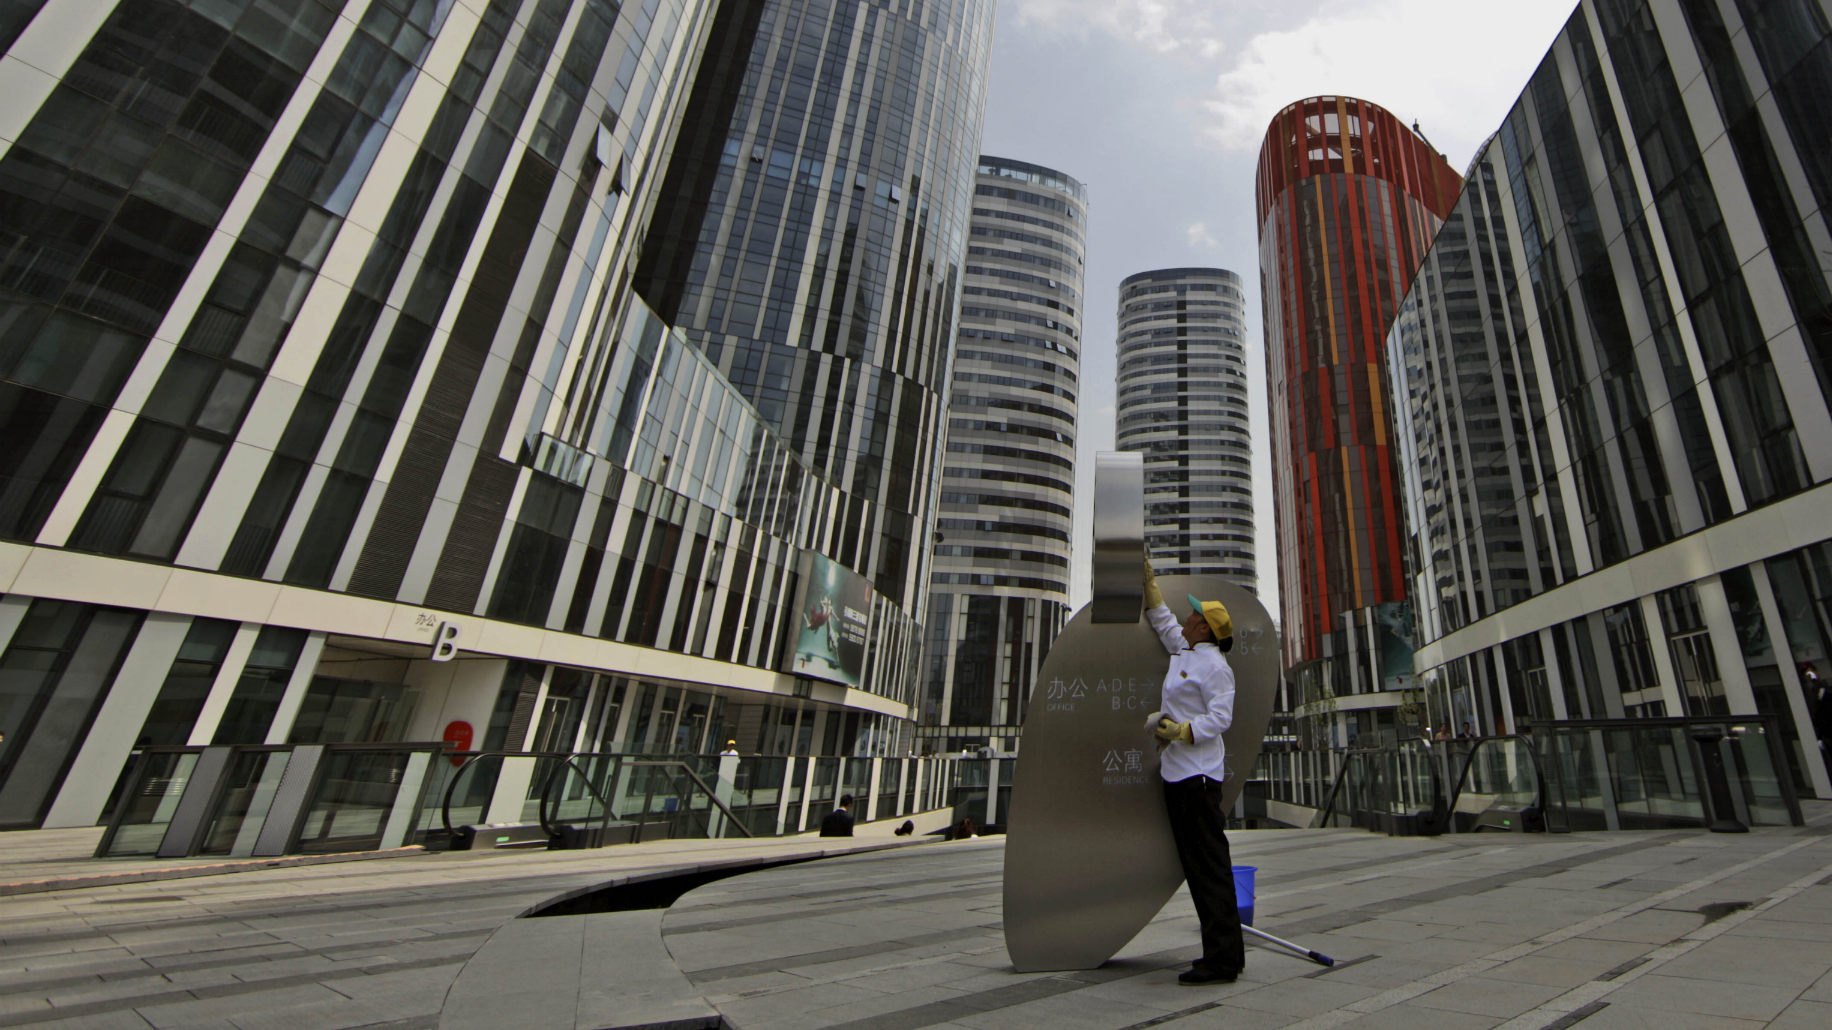 """A Chinese woman cleans a banner outside commercial and residential buildings in Beijing, China, Tuesday, May 18, 2010. Chinese Premier Wen Jiaobao commented Friday, that Beijing will act """"decisively"""" to cool surging housing prices. (AP Photo/Muhammed Muheisen)"""